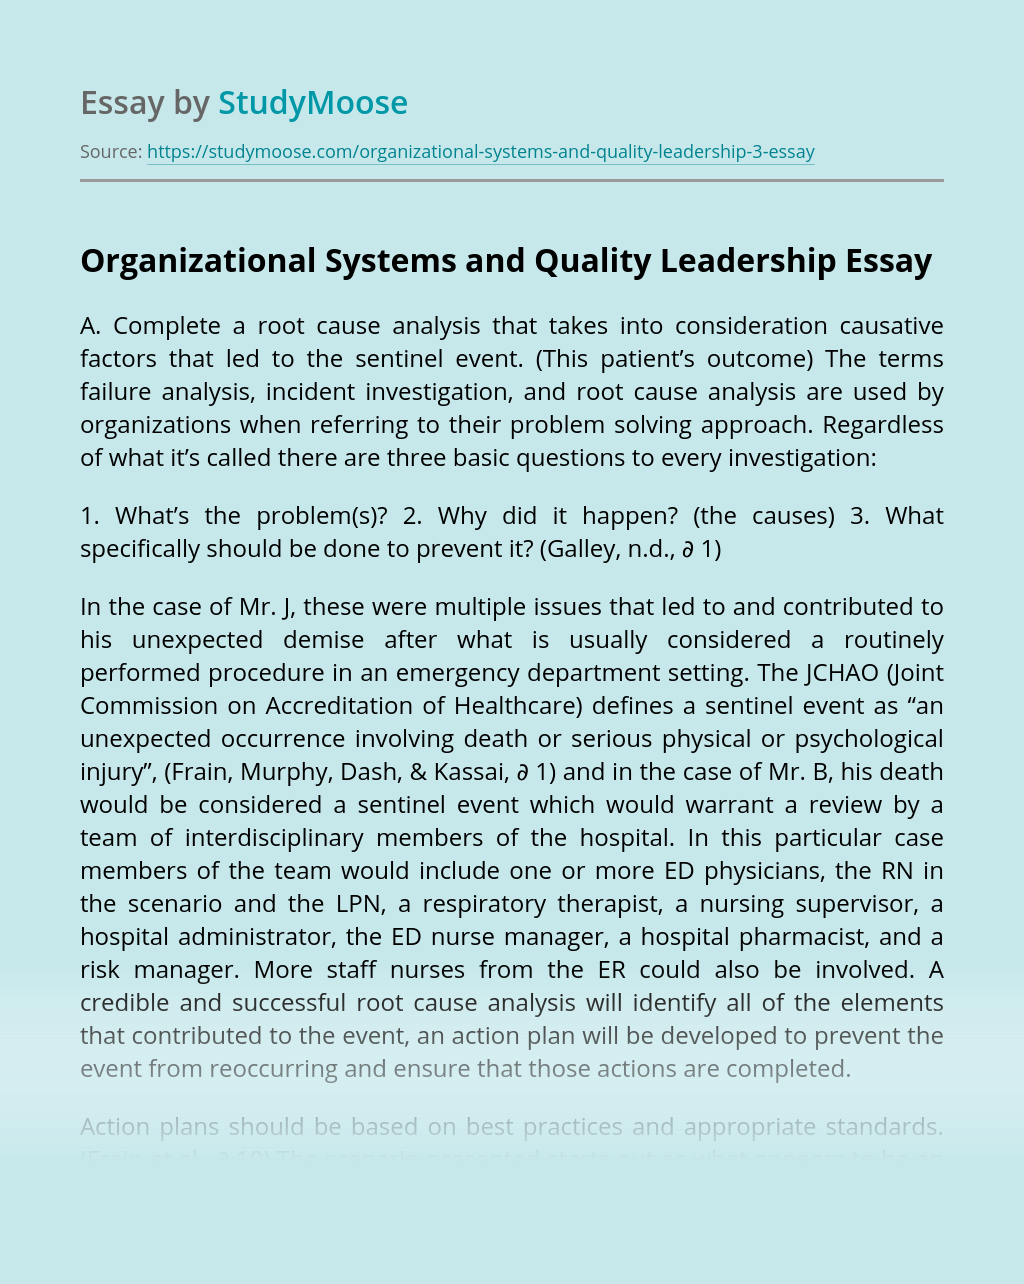 Organizational Systems and Quality Leadership